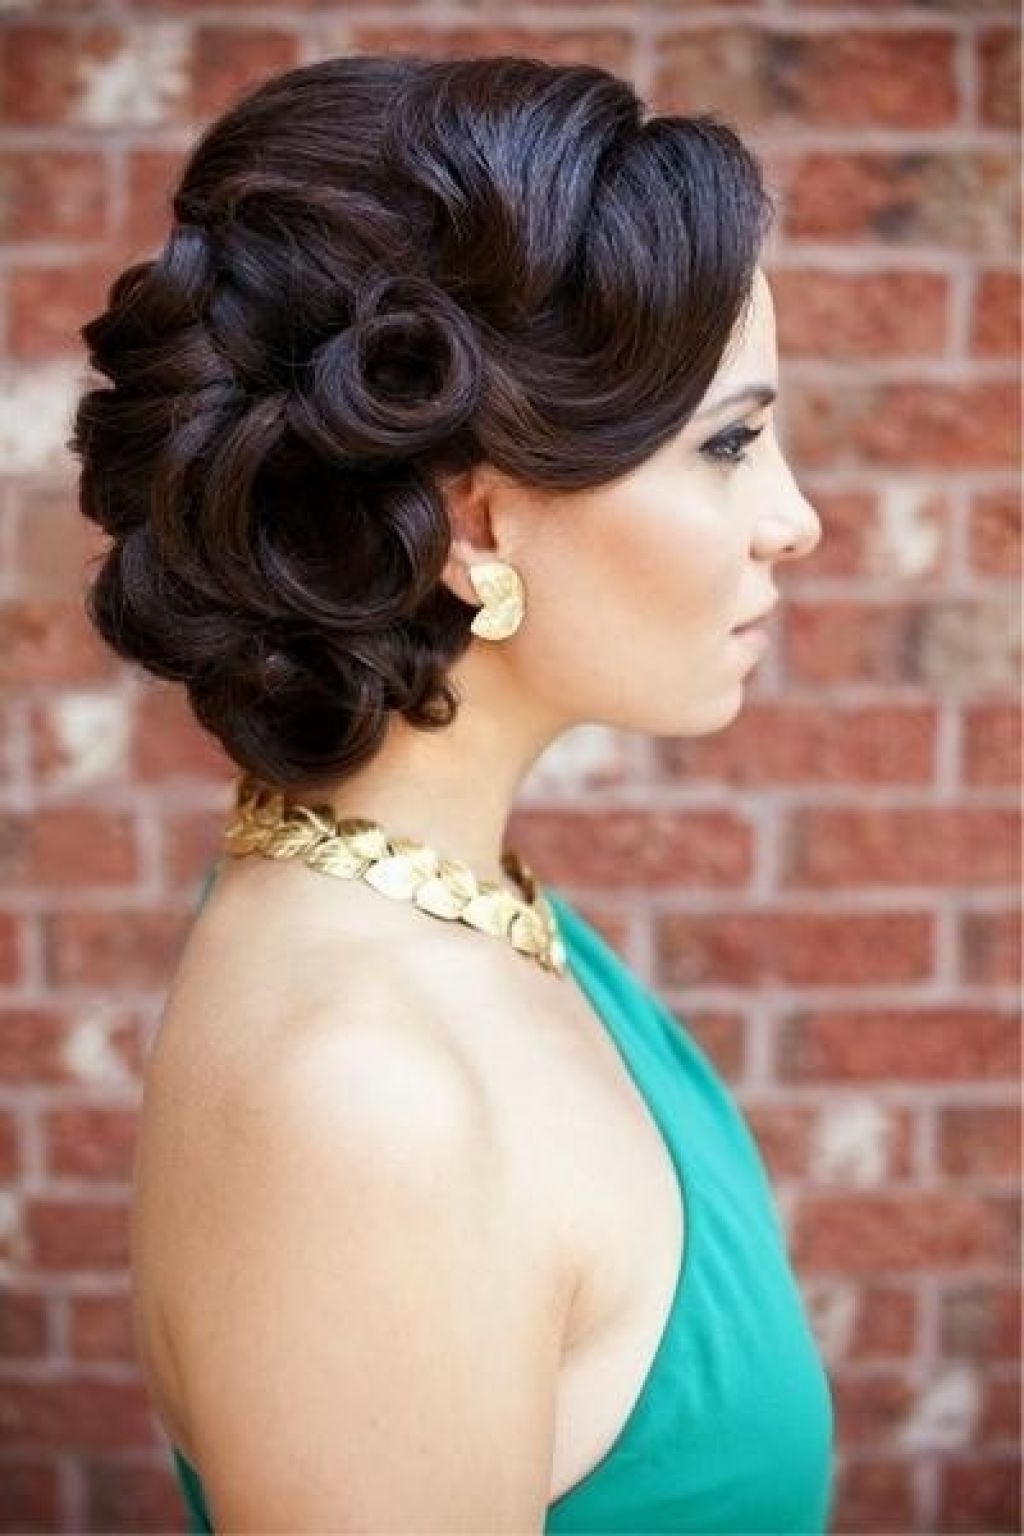 Vintage Wedding Updos For Long Hair1 Vintage Updos For Long Hair Inside Best And Newest Retro Wedding Hairstyles For Long Hair (Gallery 1 of 15)